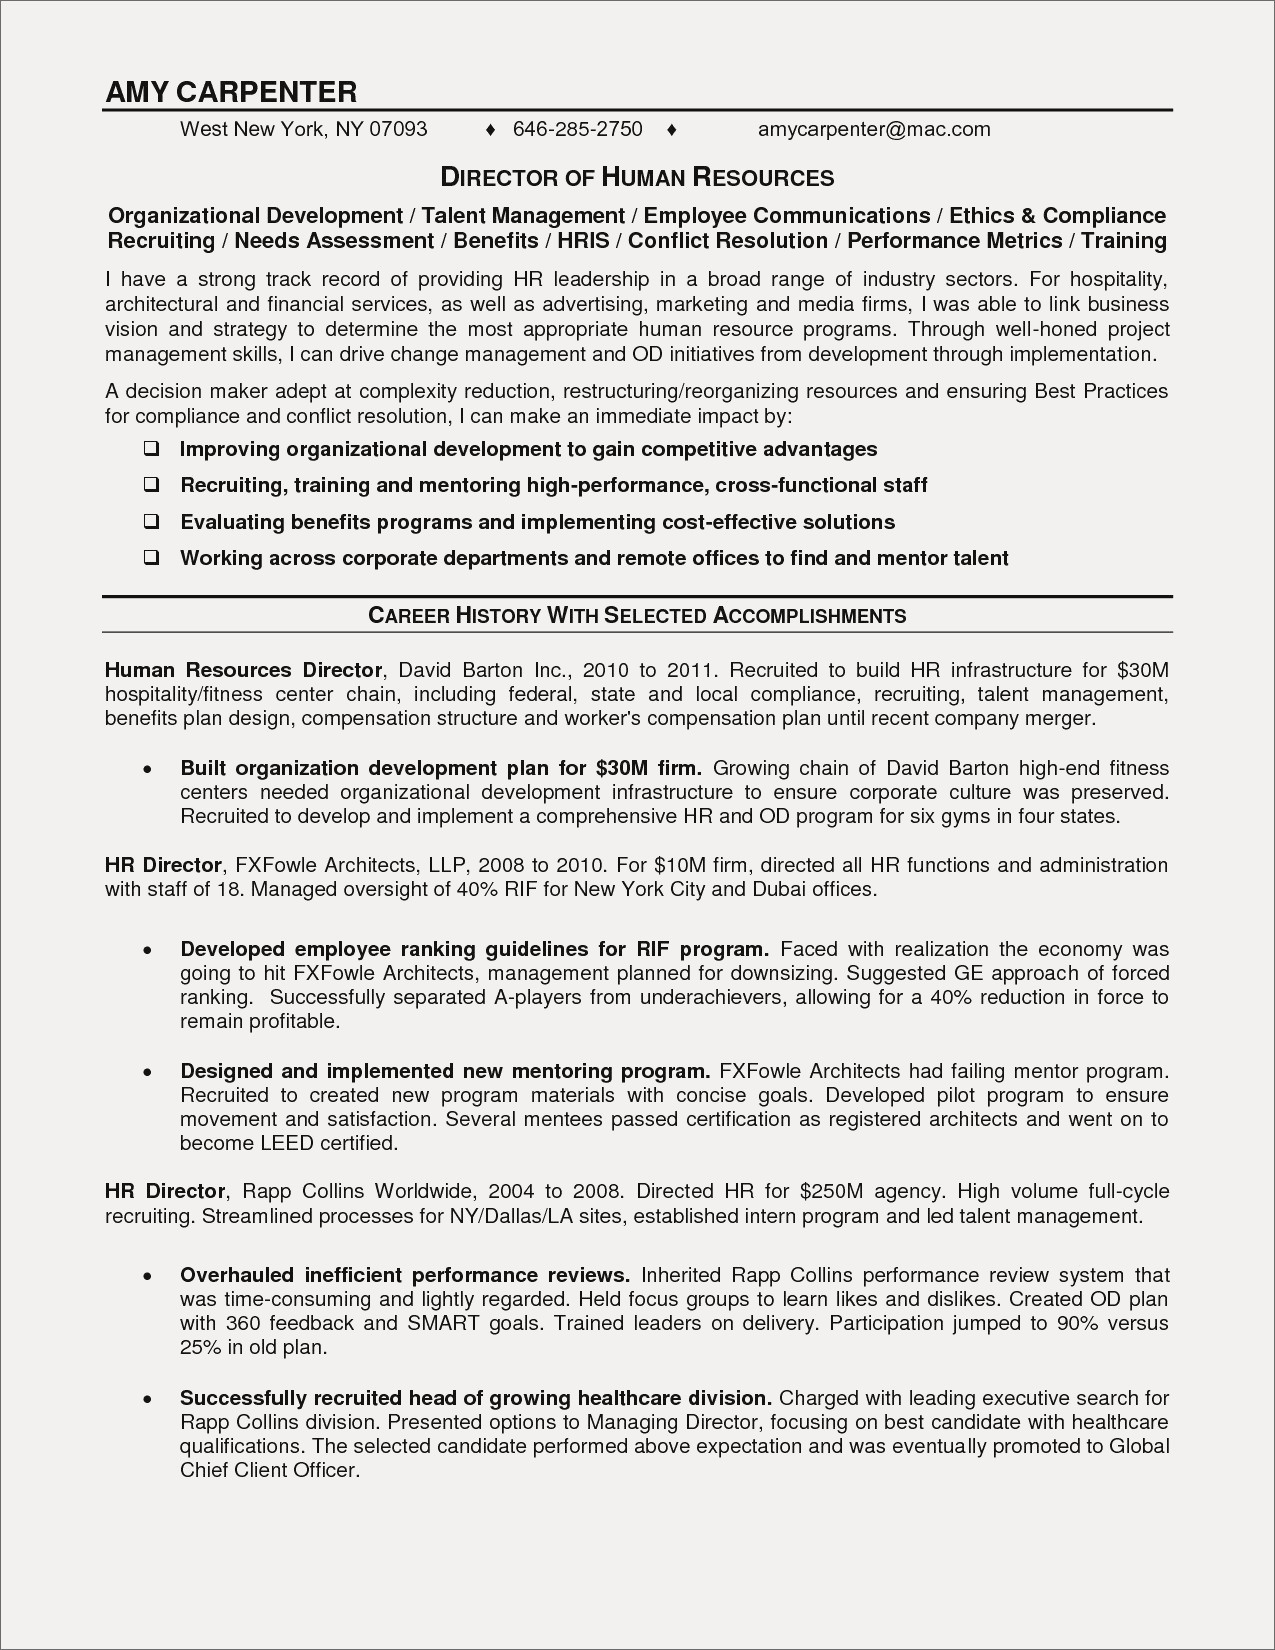 Resume Opening Statements Examples - Objective Statement Examples for Resume New Example Resume Objective